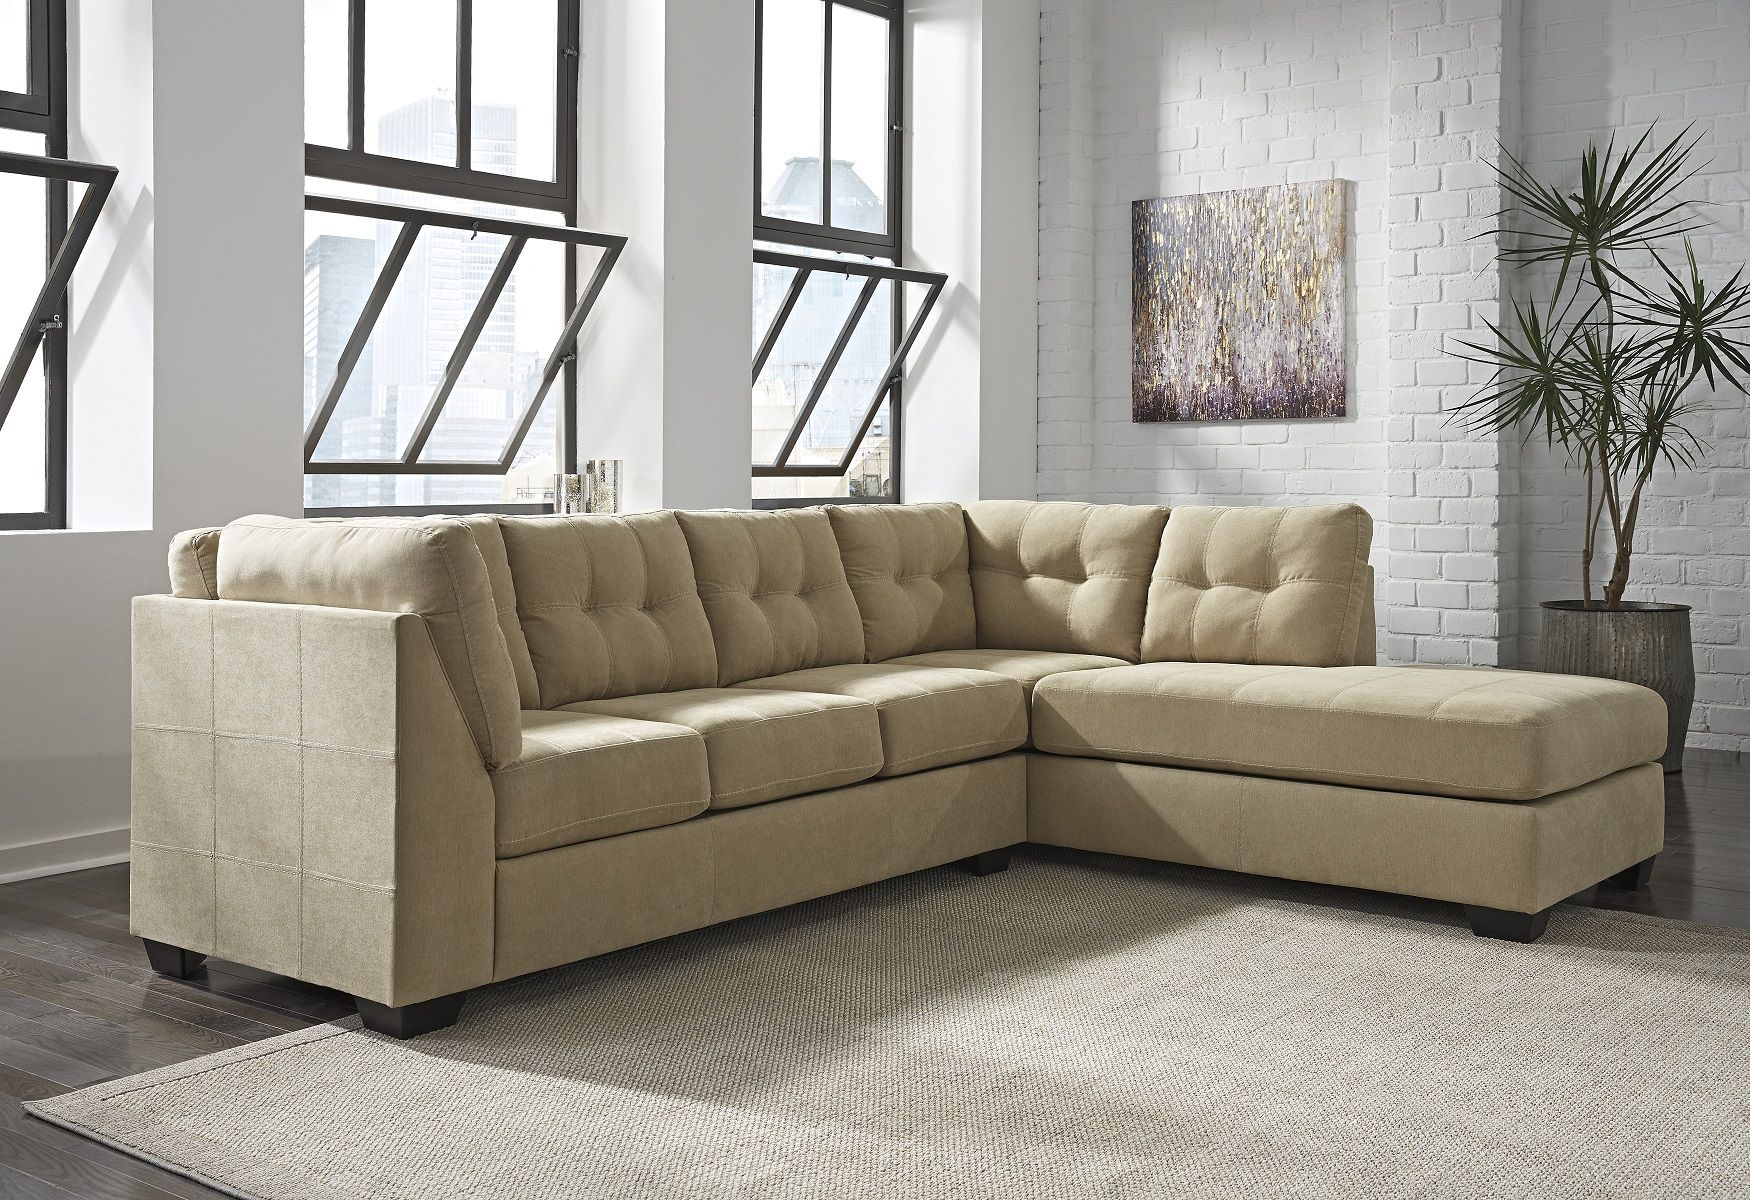 Maier 4520317 by Ashley Sectional Sofa Urban style Ashley